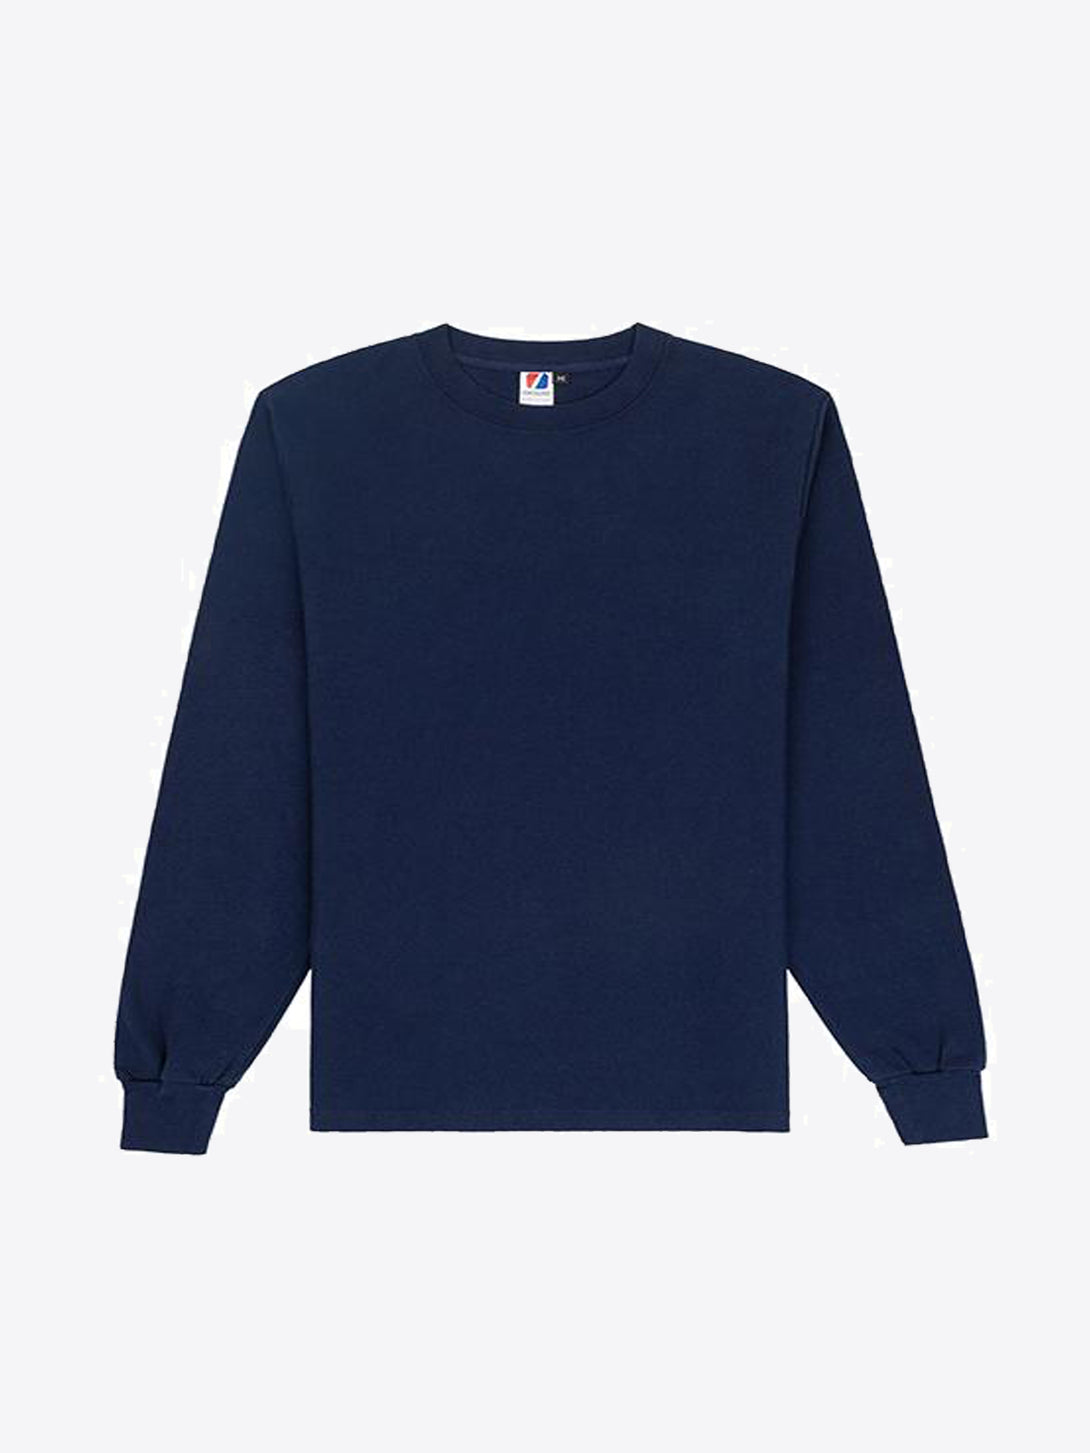 Rugby L/S Tee - Navy